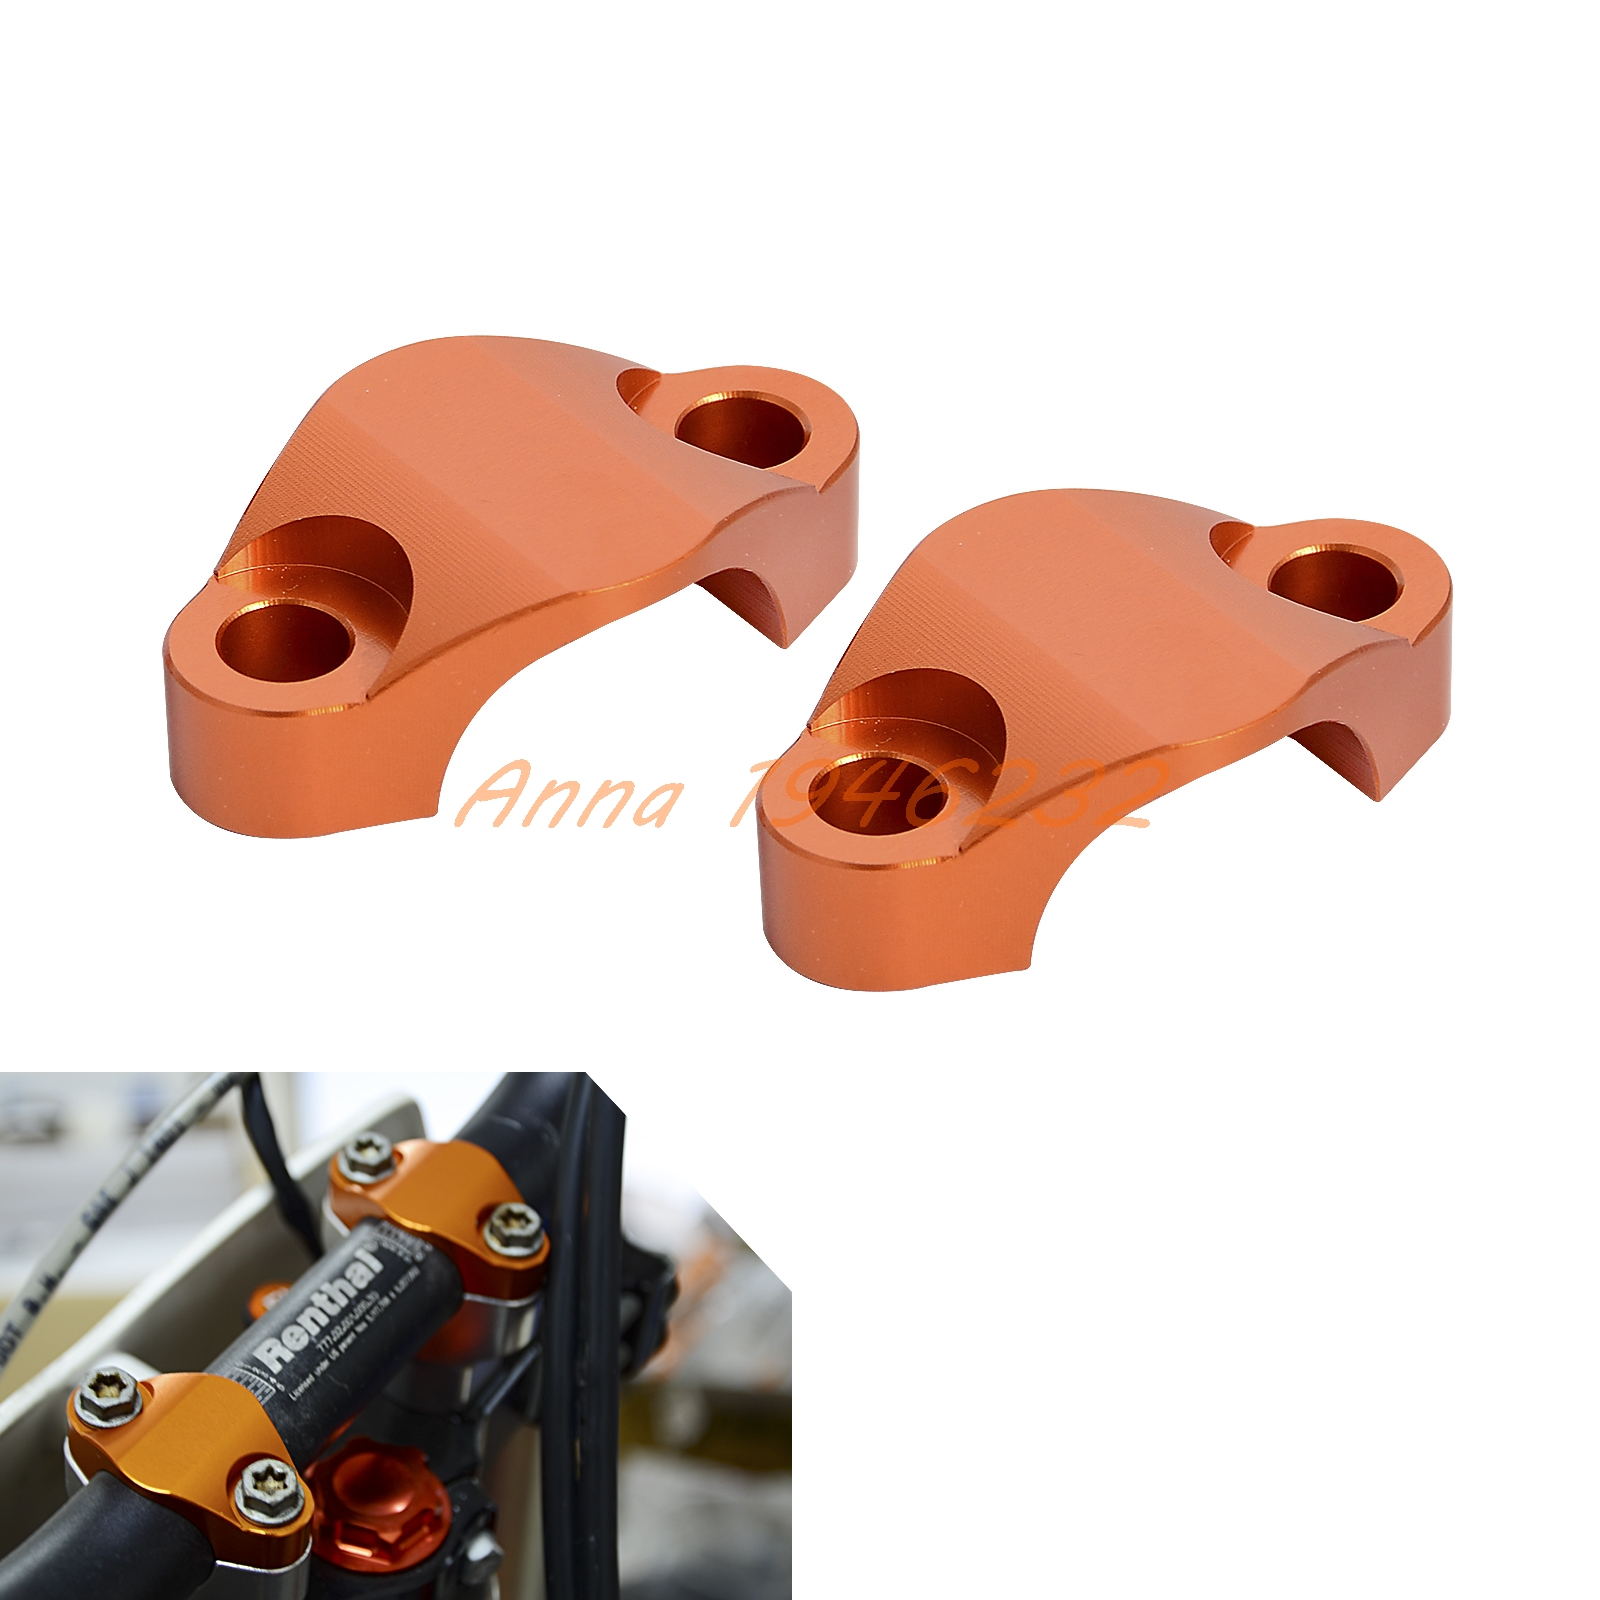 1-1/8 CNC BILLET HANDLEBAR CLAMP 28MM  For KTM 125 150 200 250 350 450 530 SX EXC XC XCW SXF FREERIDE cnc stunt clutch lever easy pull cable system for ktm exc excf xc xcf xcw xcfw mx egs sx sxf sxs smr 50 65 85 125 150 200 250